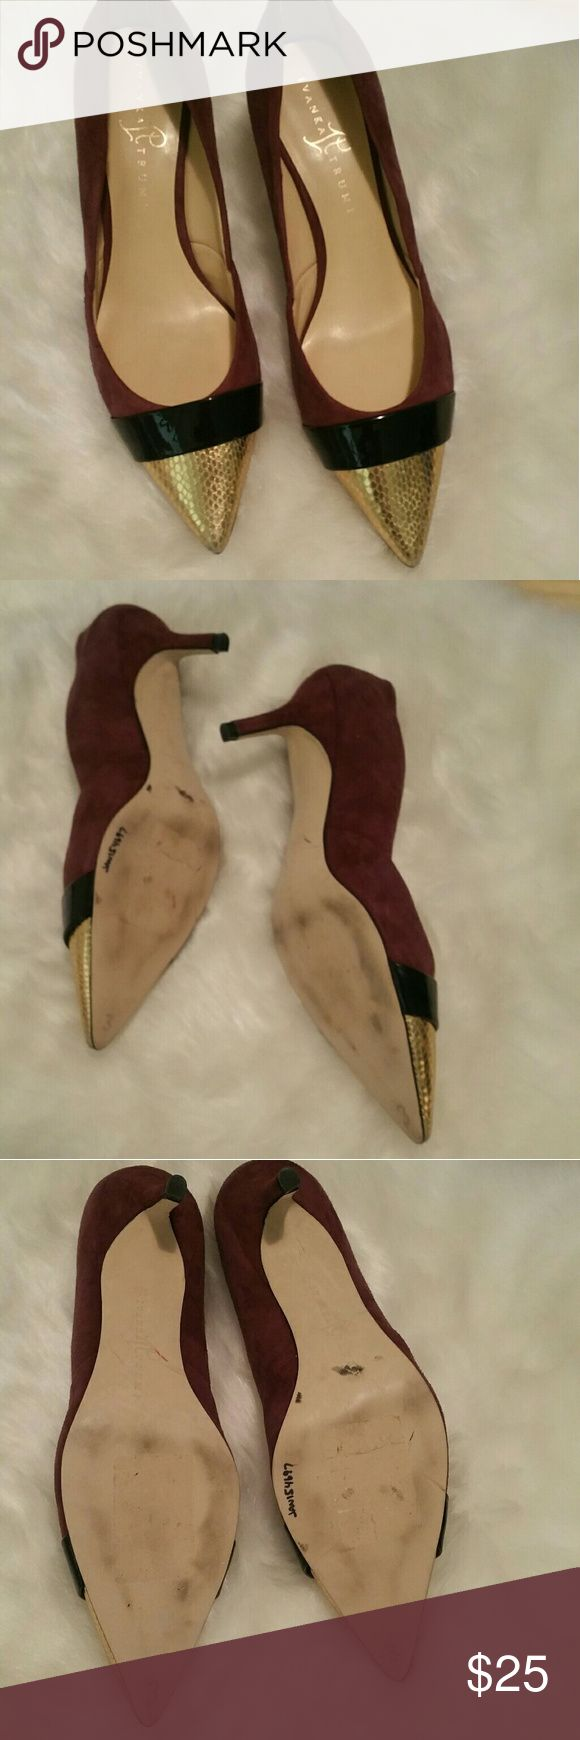 "☆SALE☆ Ivanka Trump heels Ivanka Trump suede heels with gold capped toes. Approximately 2"" heels, good condition. Re-Poshing as they don't fit. Ivanka Trump Shoes Heels"